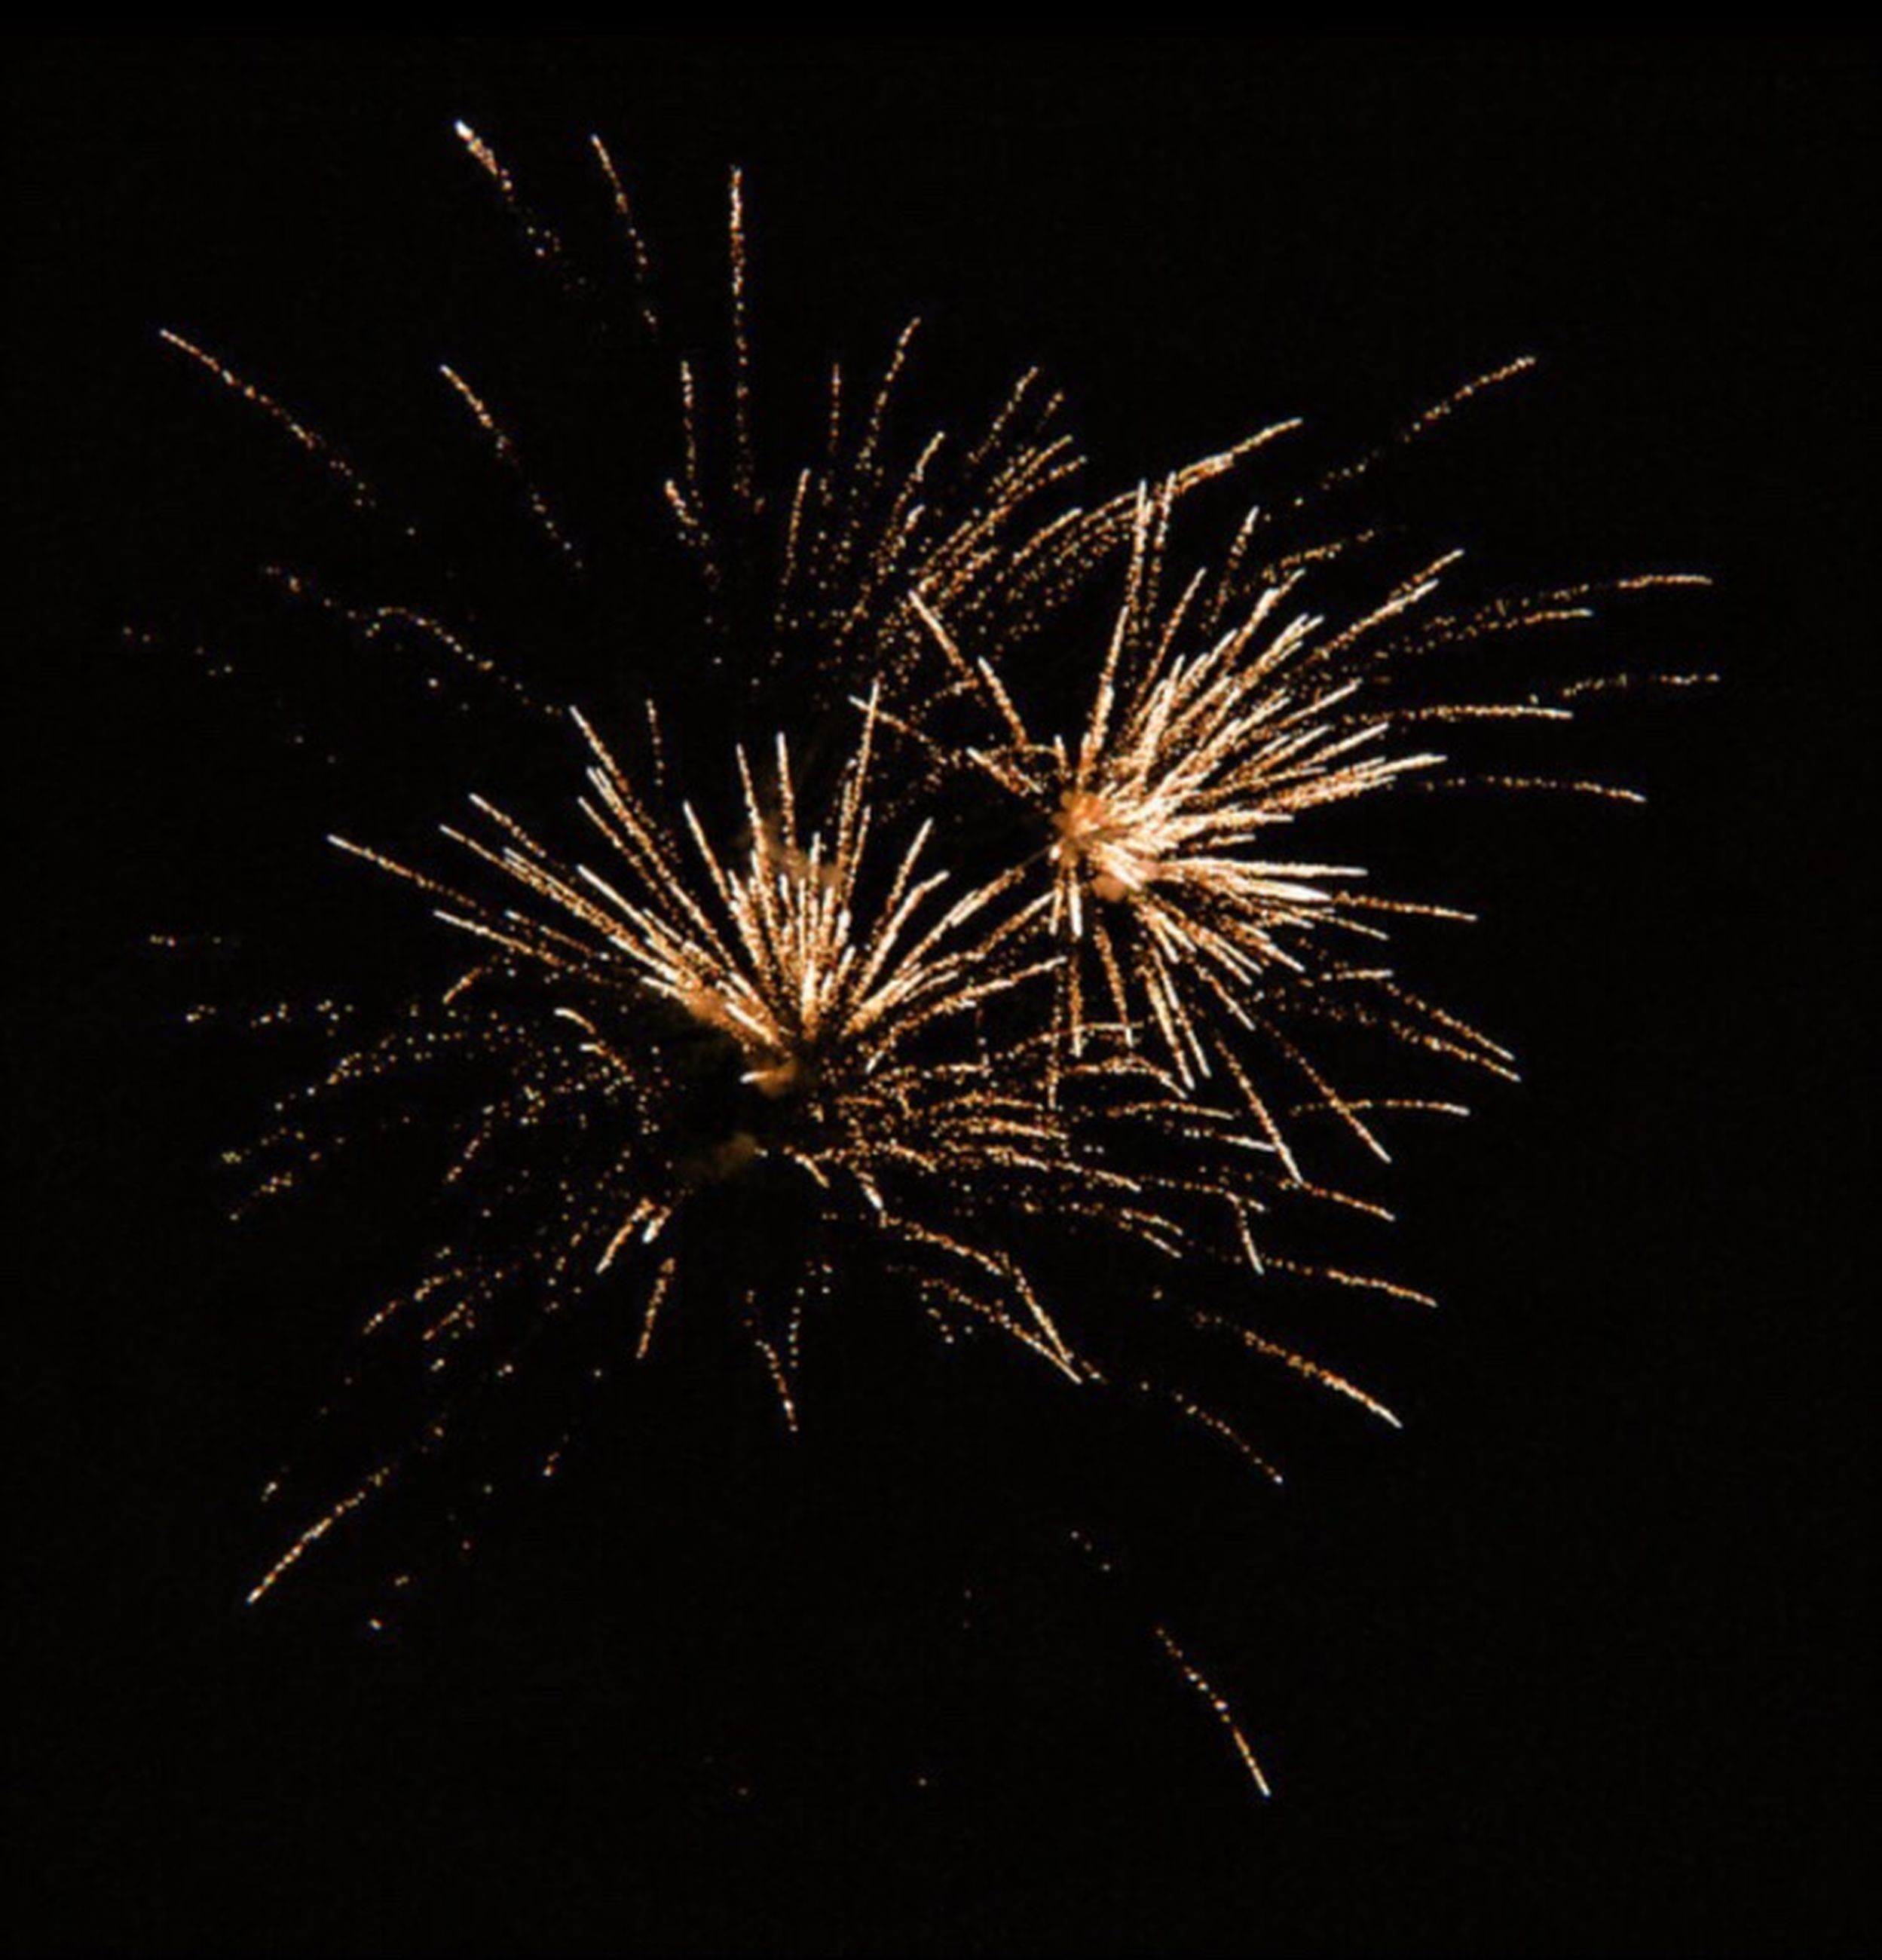 firework display, firework - man made object, exploding, celebration, sparks, night, arts culture and entertainment, long exposure, motion, event, low angle view, no people, illuminated, explosive, outdoors, sparkler, sky, firework, diwali, black background